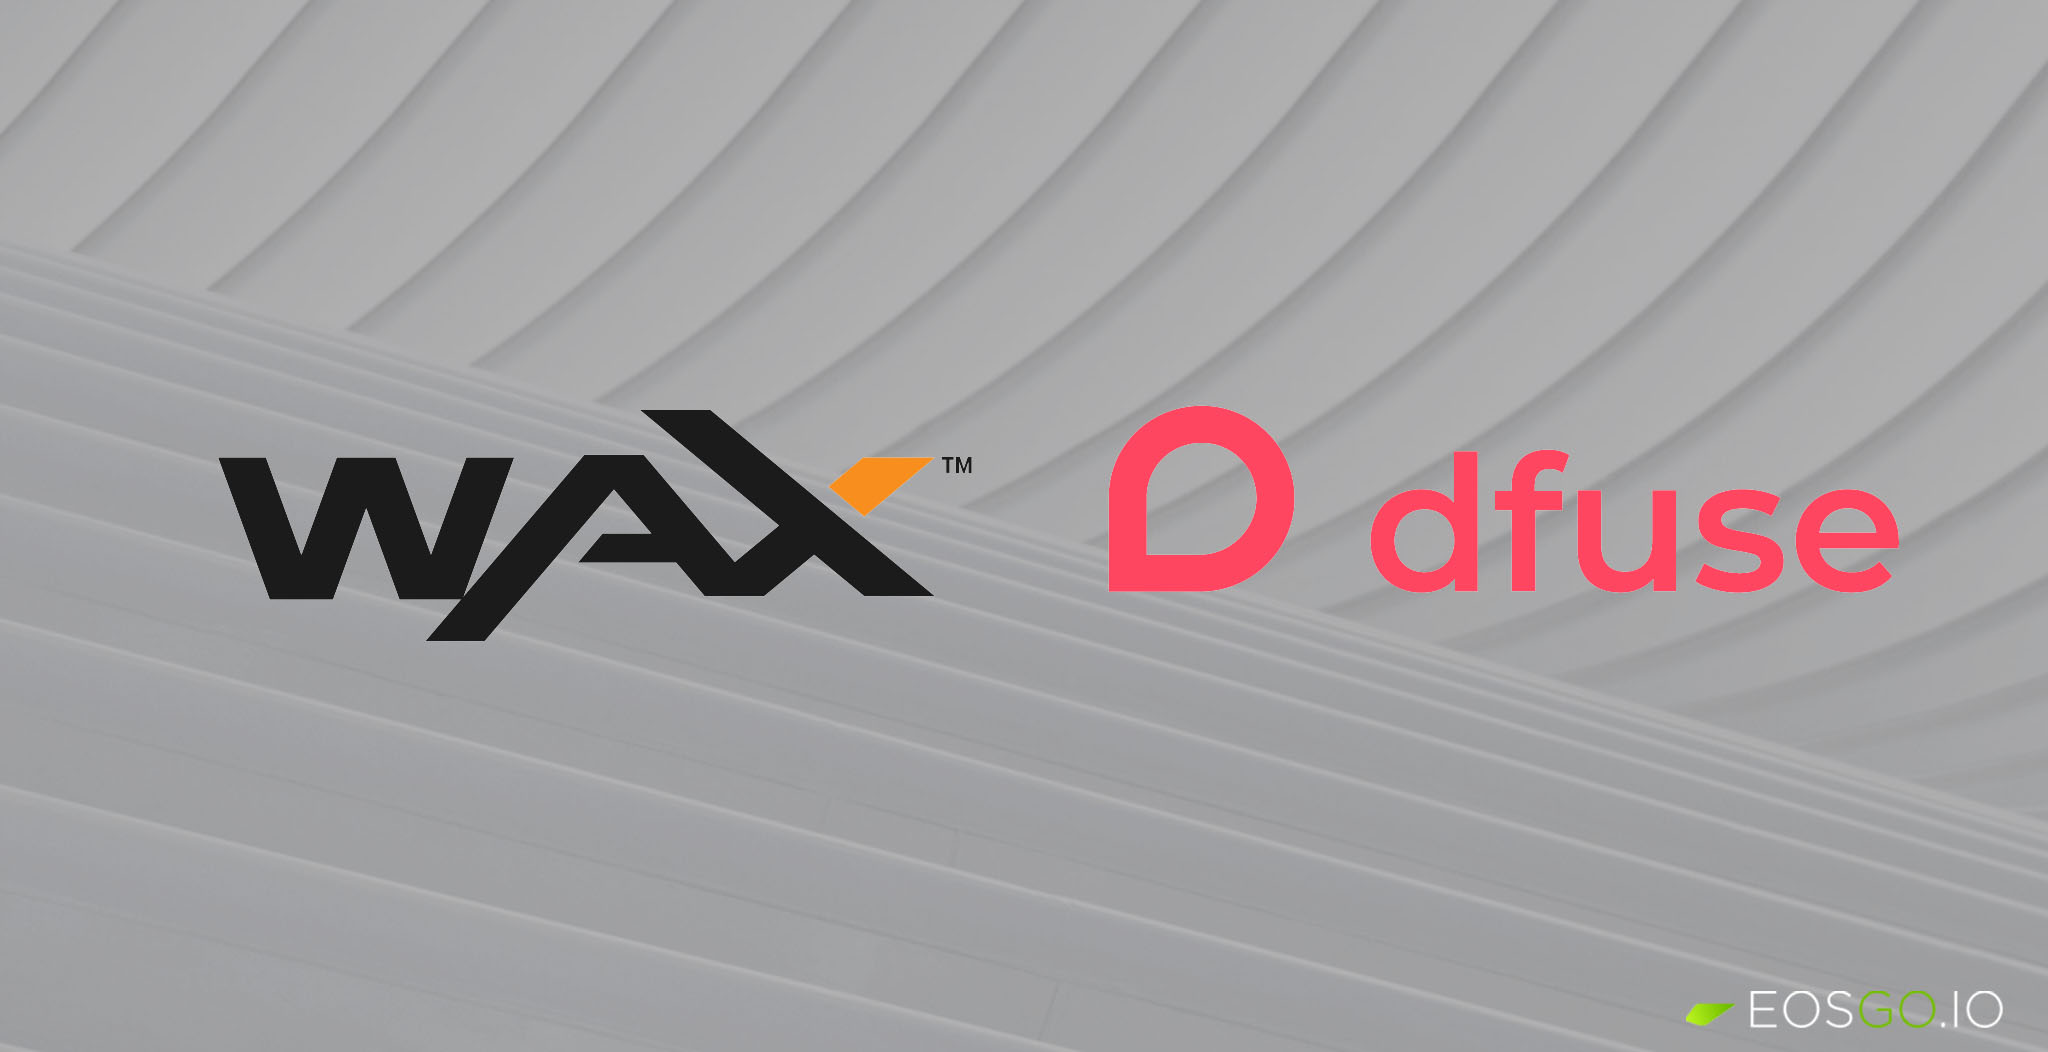 wax-and-dfuse-announced-partnership